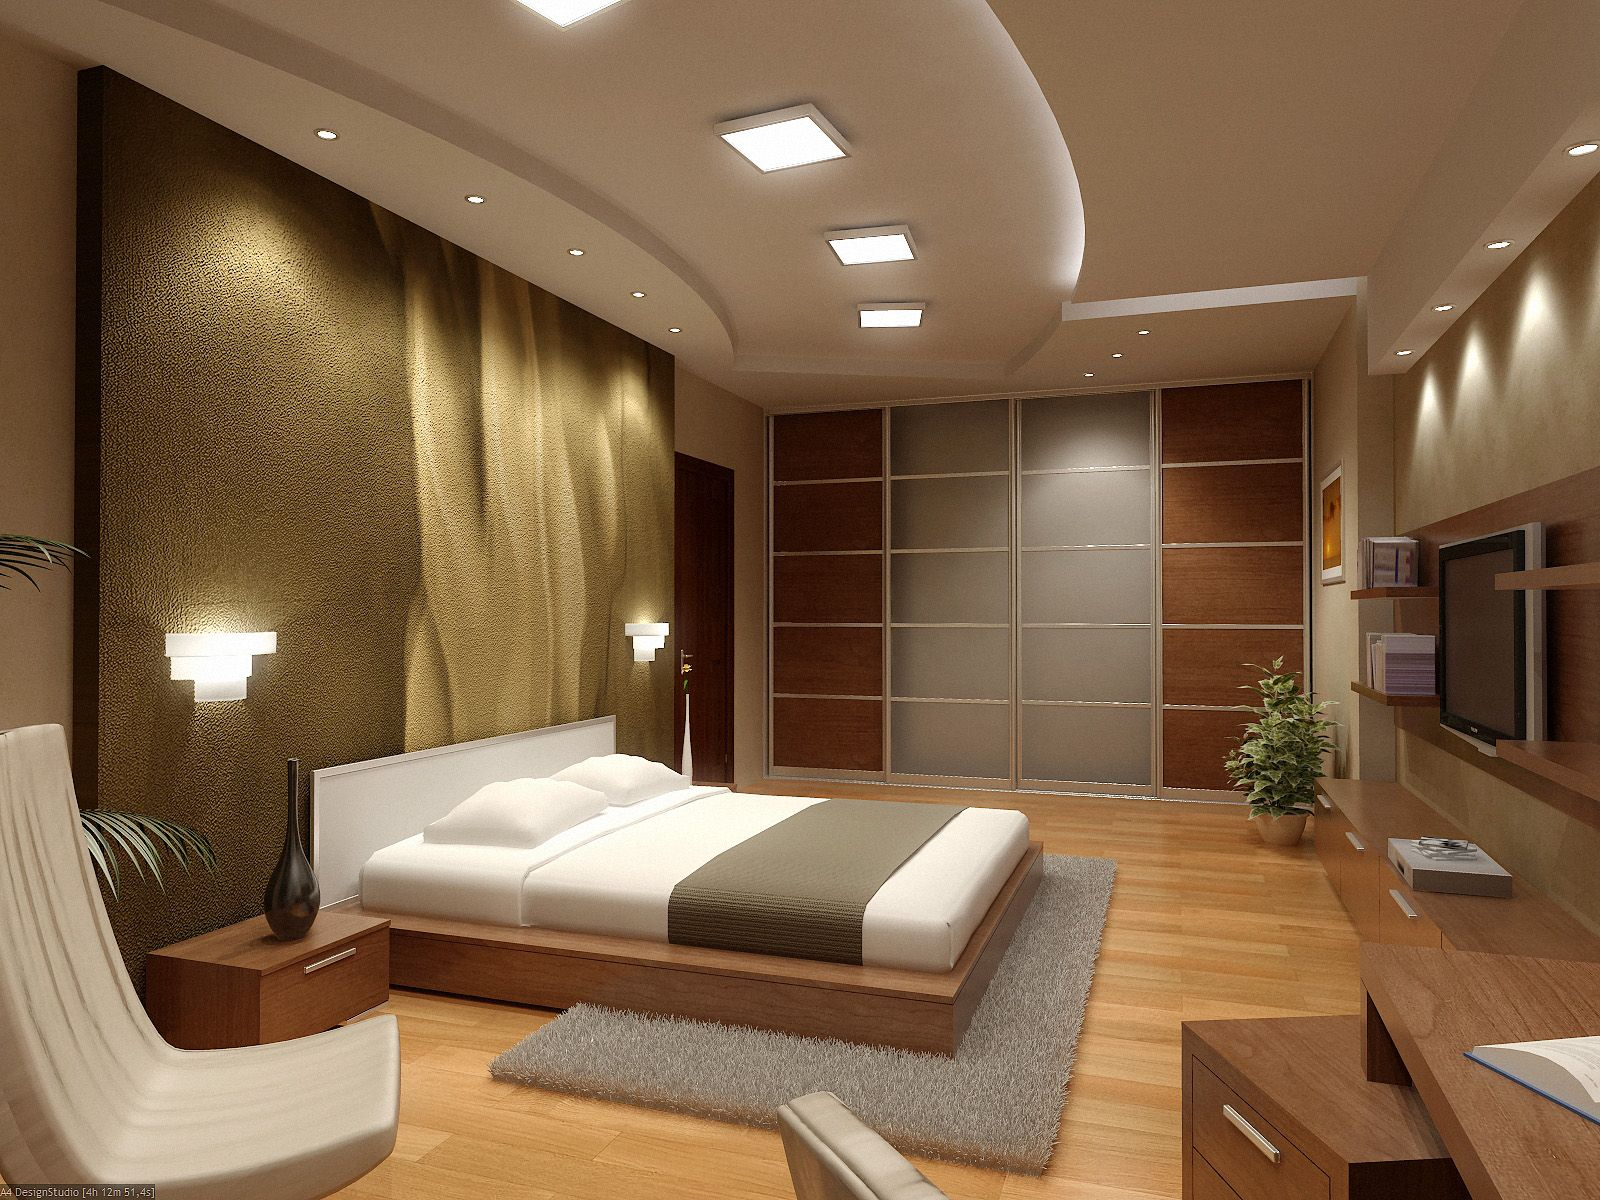 Modern Bedroom Interior Design Ideas-4.bp.blogspot.com